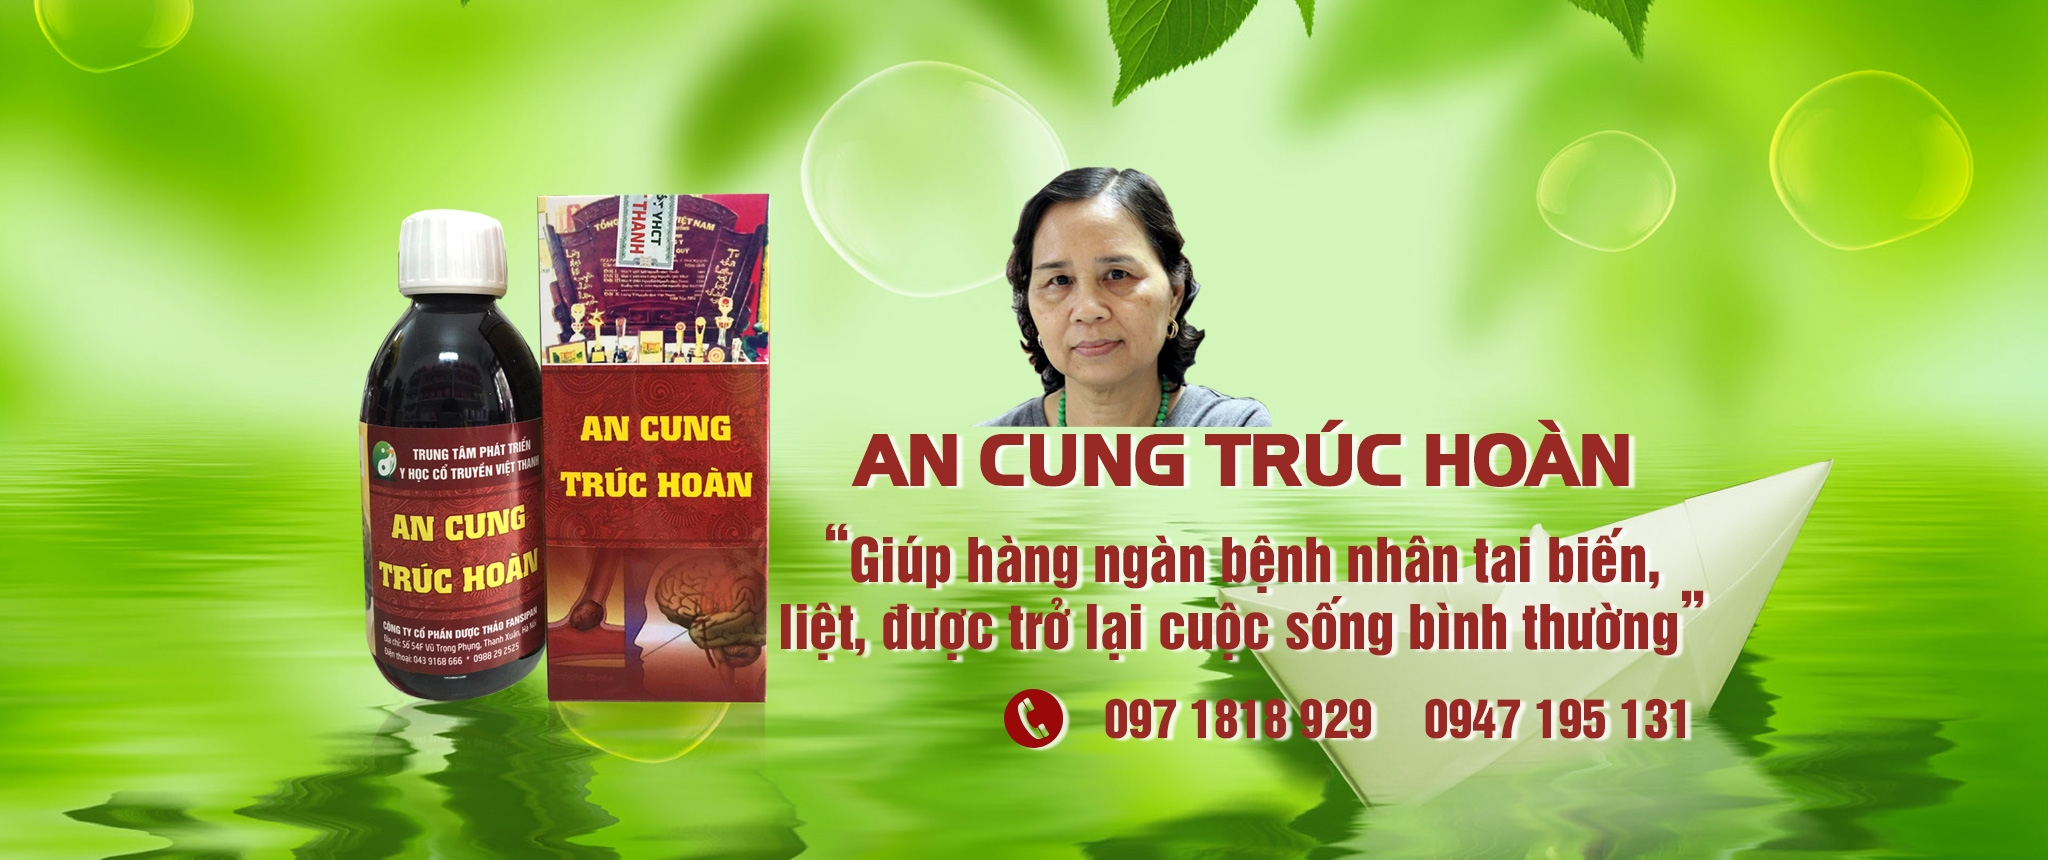 Nguyễn Quý Thanh (@luongyquythanh) Cover Image